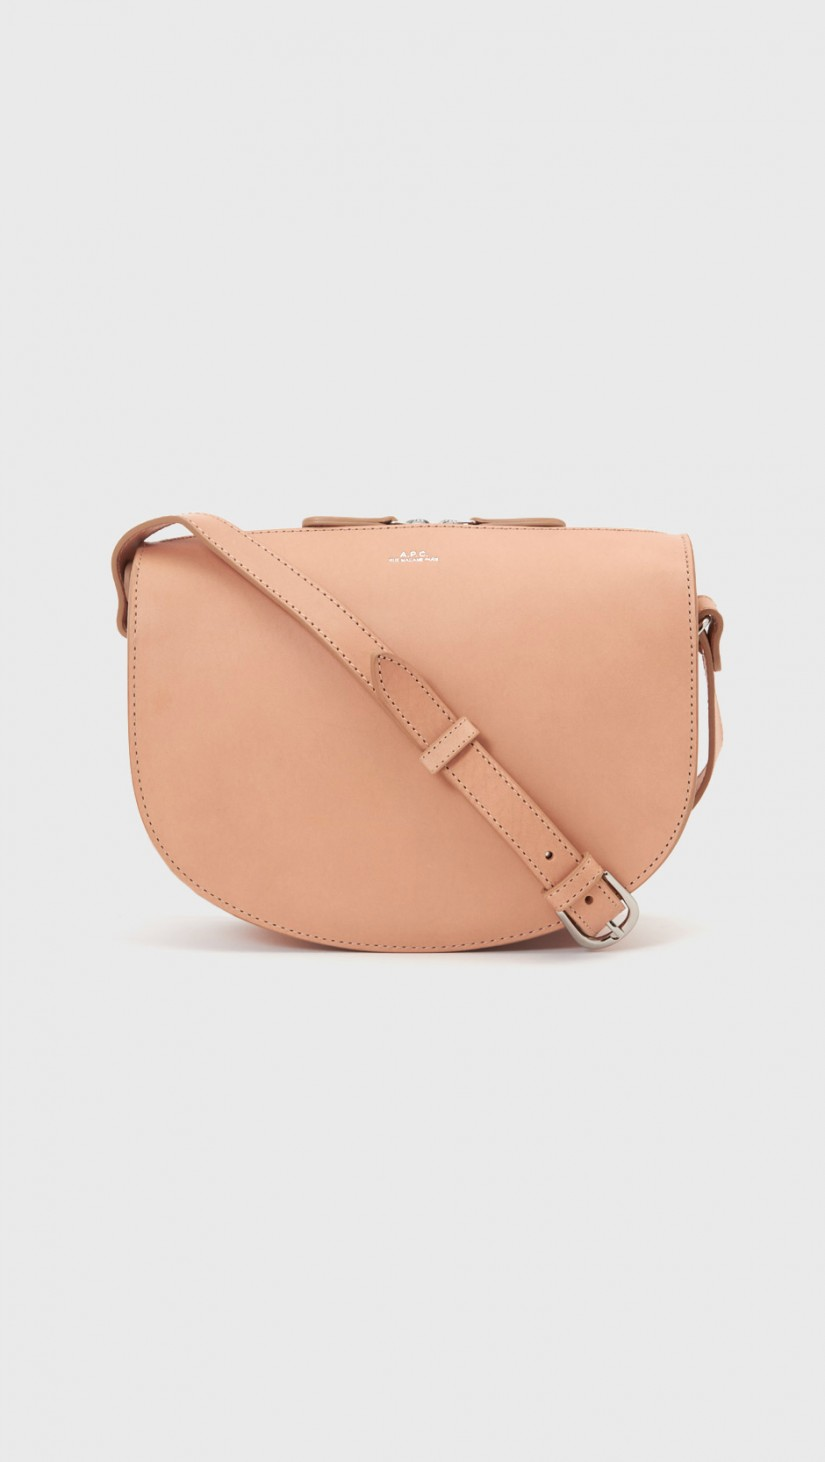 Andrea Half Moon Bag   Beige natural leather with half moon shape. Has adjustable buckle strap and zip closure.  APC $435